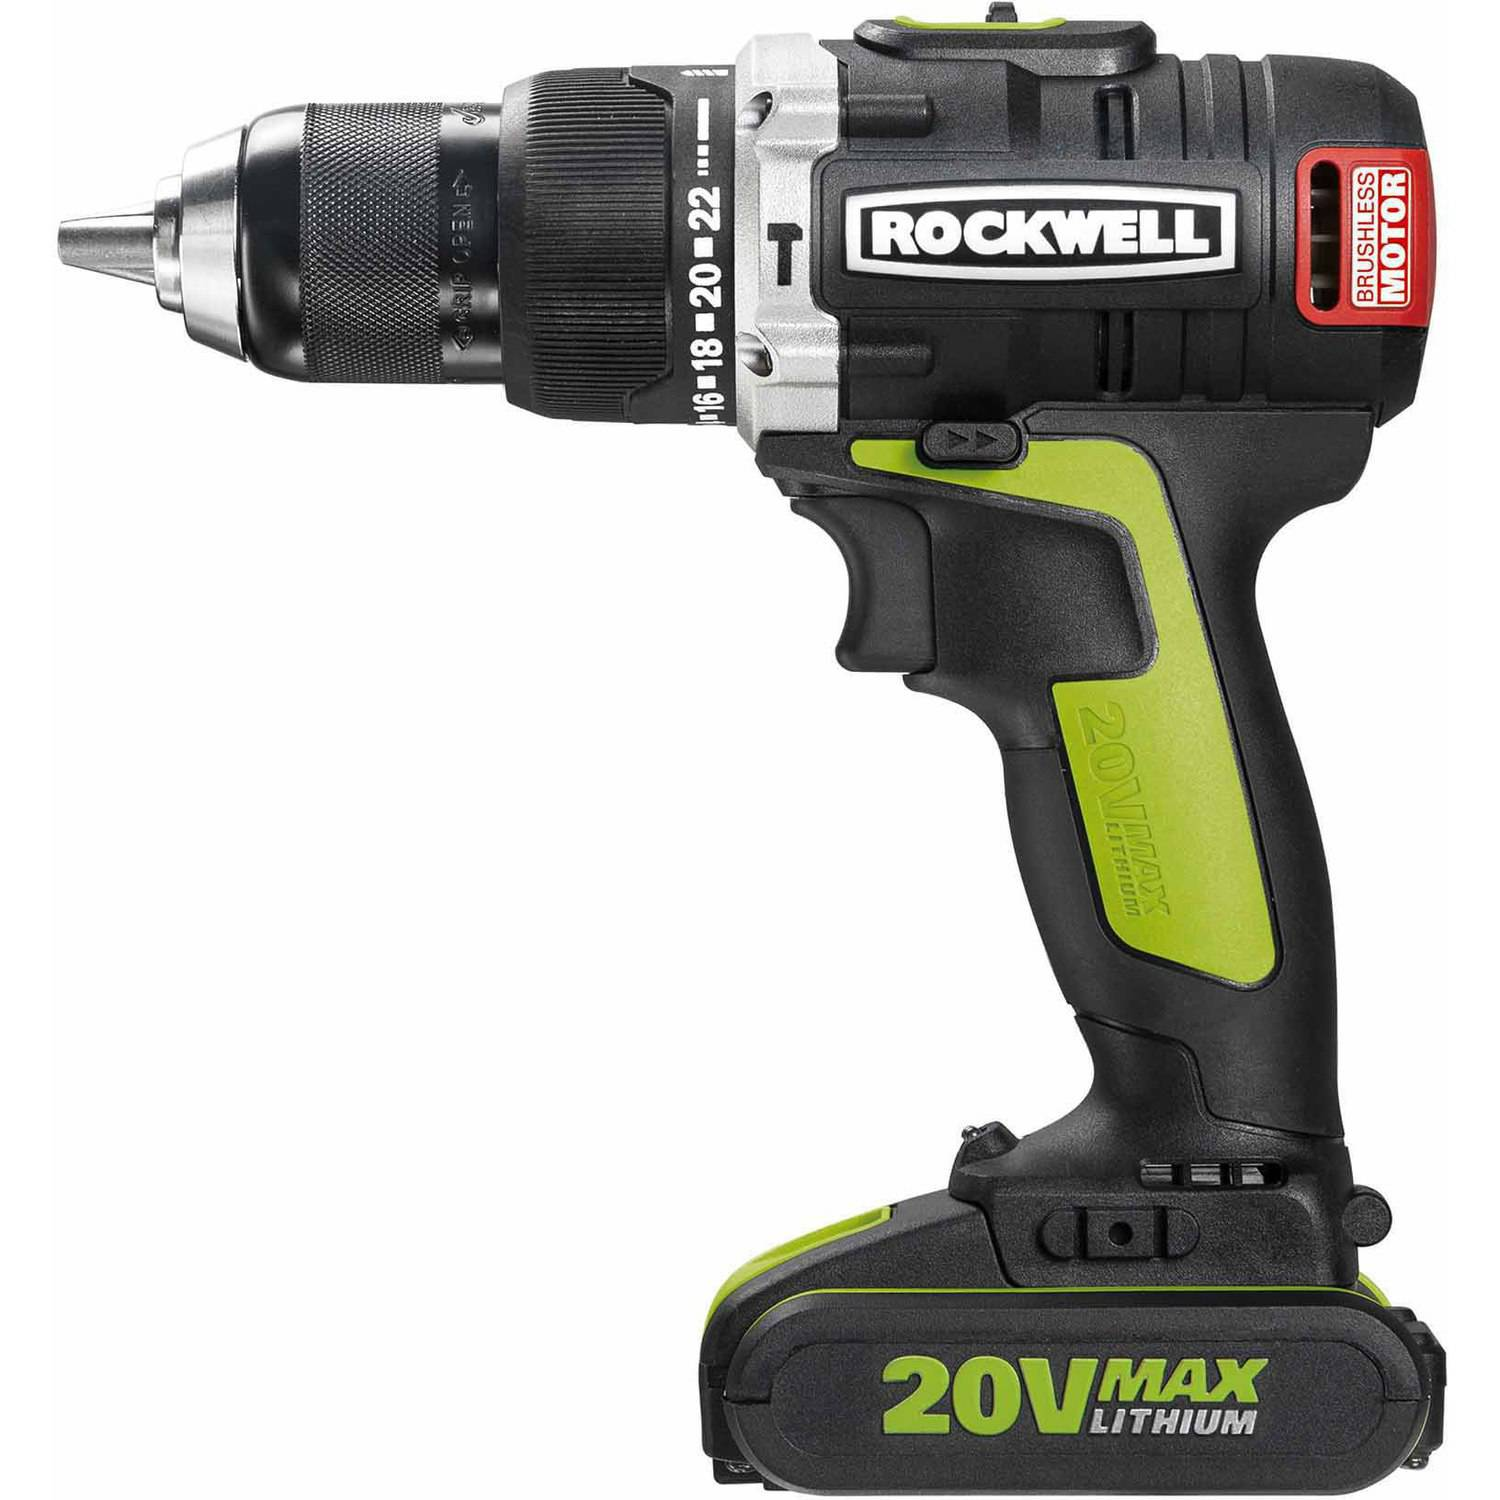 Rockwell 20V Li-ion Brushless Hammer Drill with 2-2.0Ah Batteries by Positec Technology